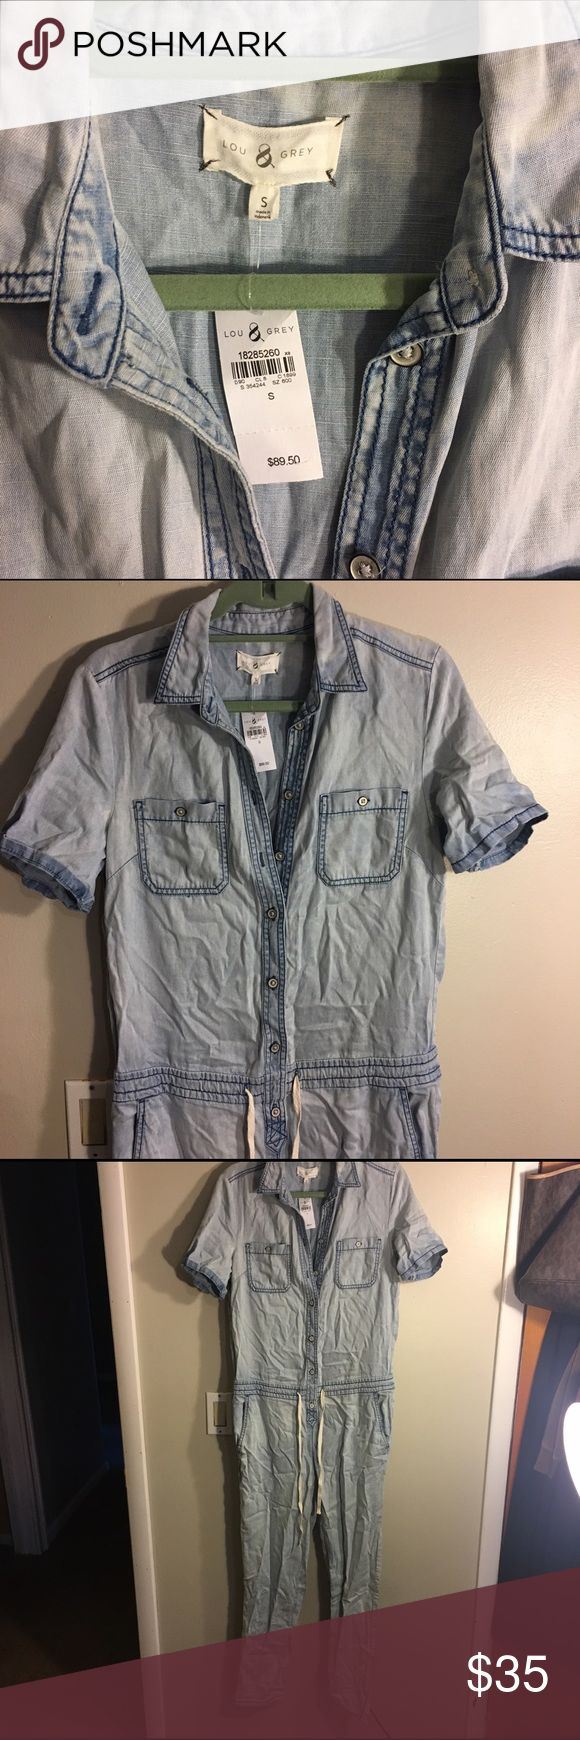 Brand New! Jumpsuit with sleeves Brand New! Jumpsuit with half sleeves and a comfy fit Lou & Grey Jeans